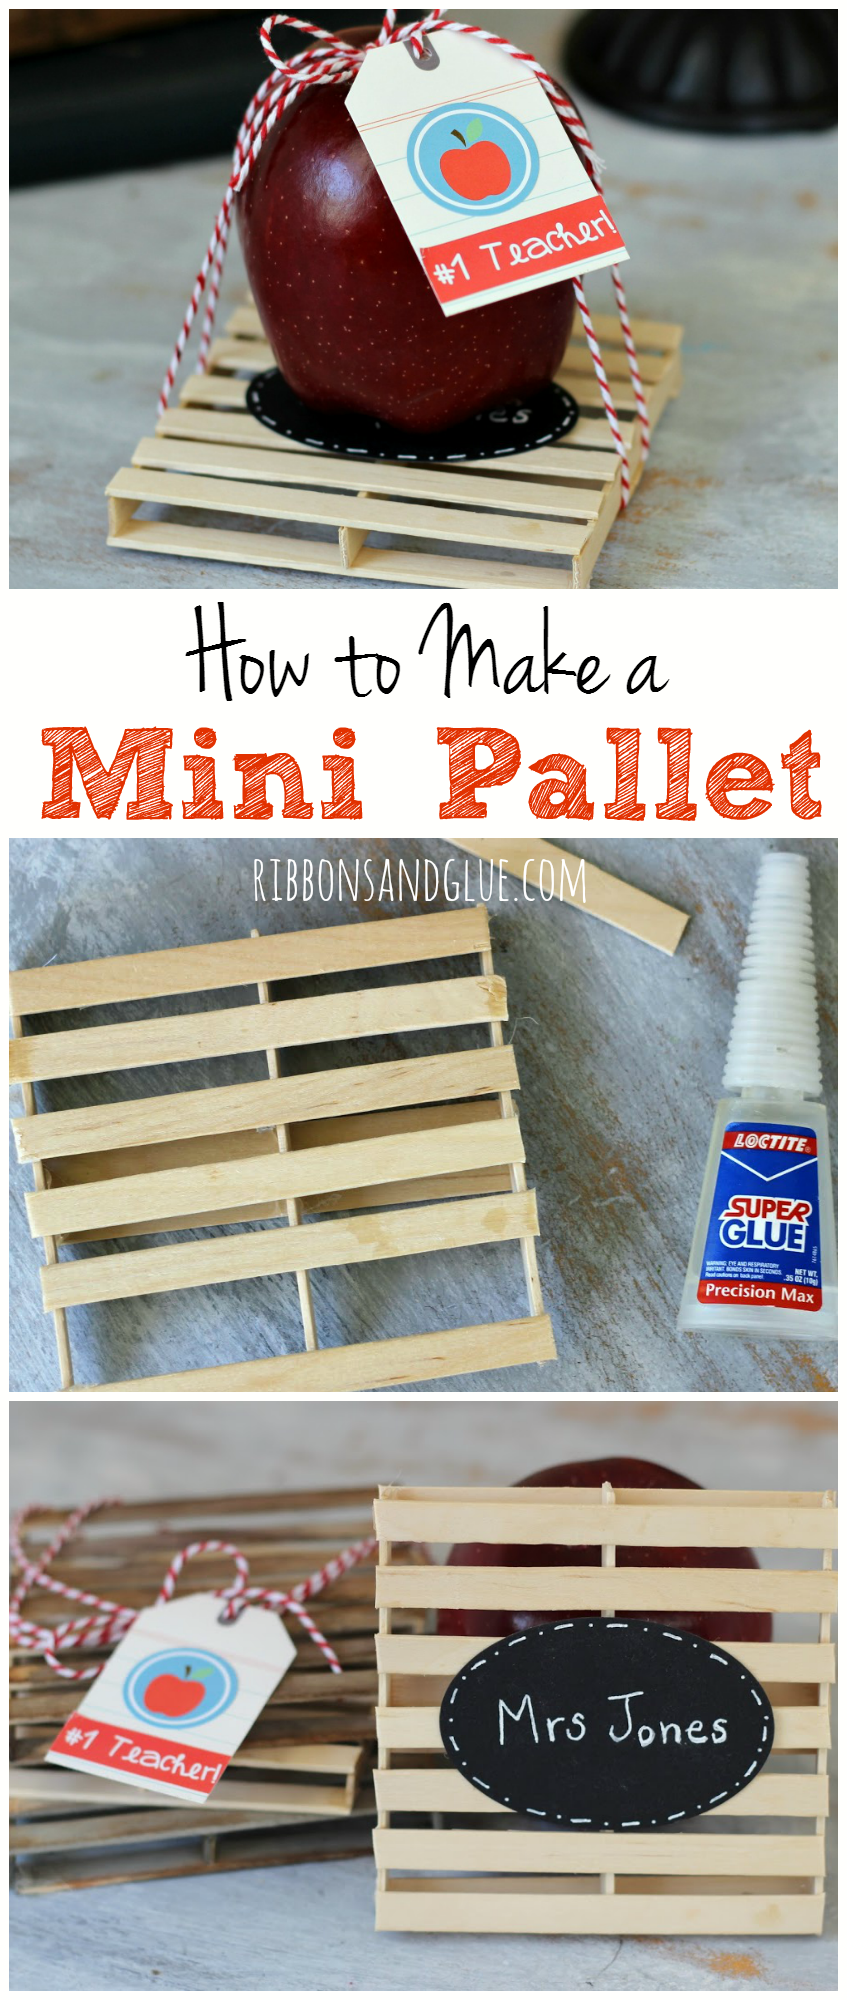 How to make a Mini Pallet using Popsicle sticks. Unique and creative Teacher Gift idea perfect to use as a drink coaster on a Teachers Desk.